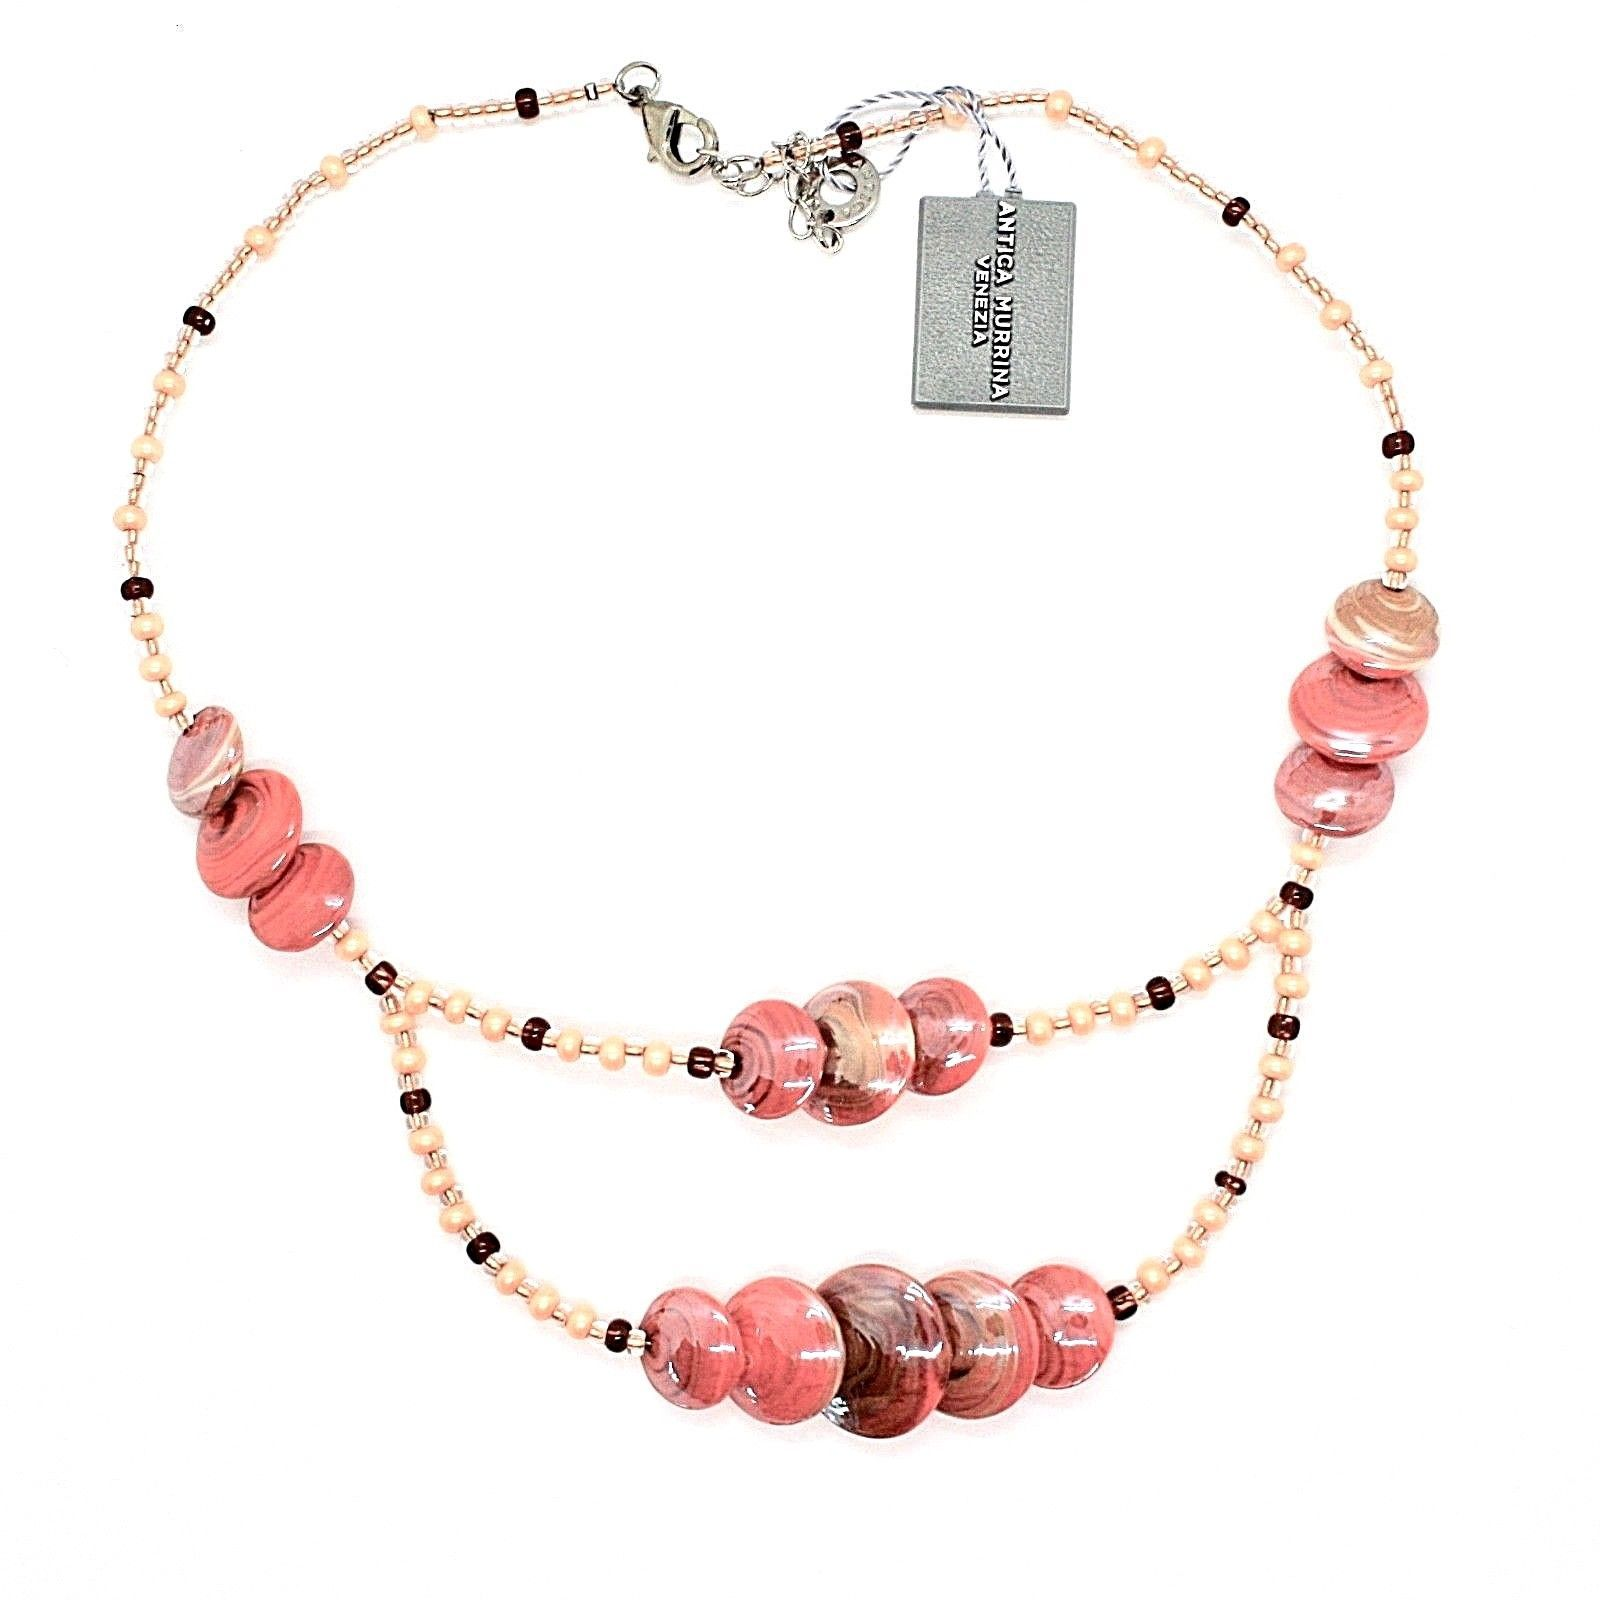 NECKLACE ANTICA MURRINA VENEZIA WITH MURANO GLASS ORANGE BEIGE CO960A25